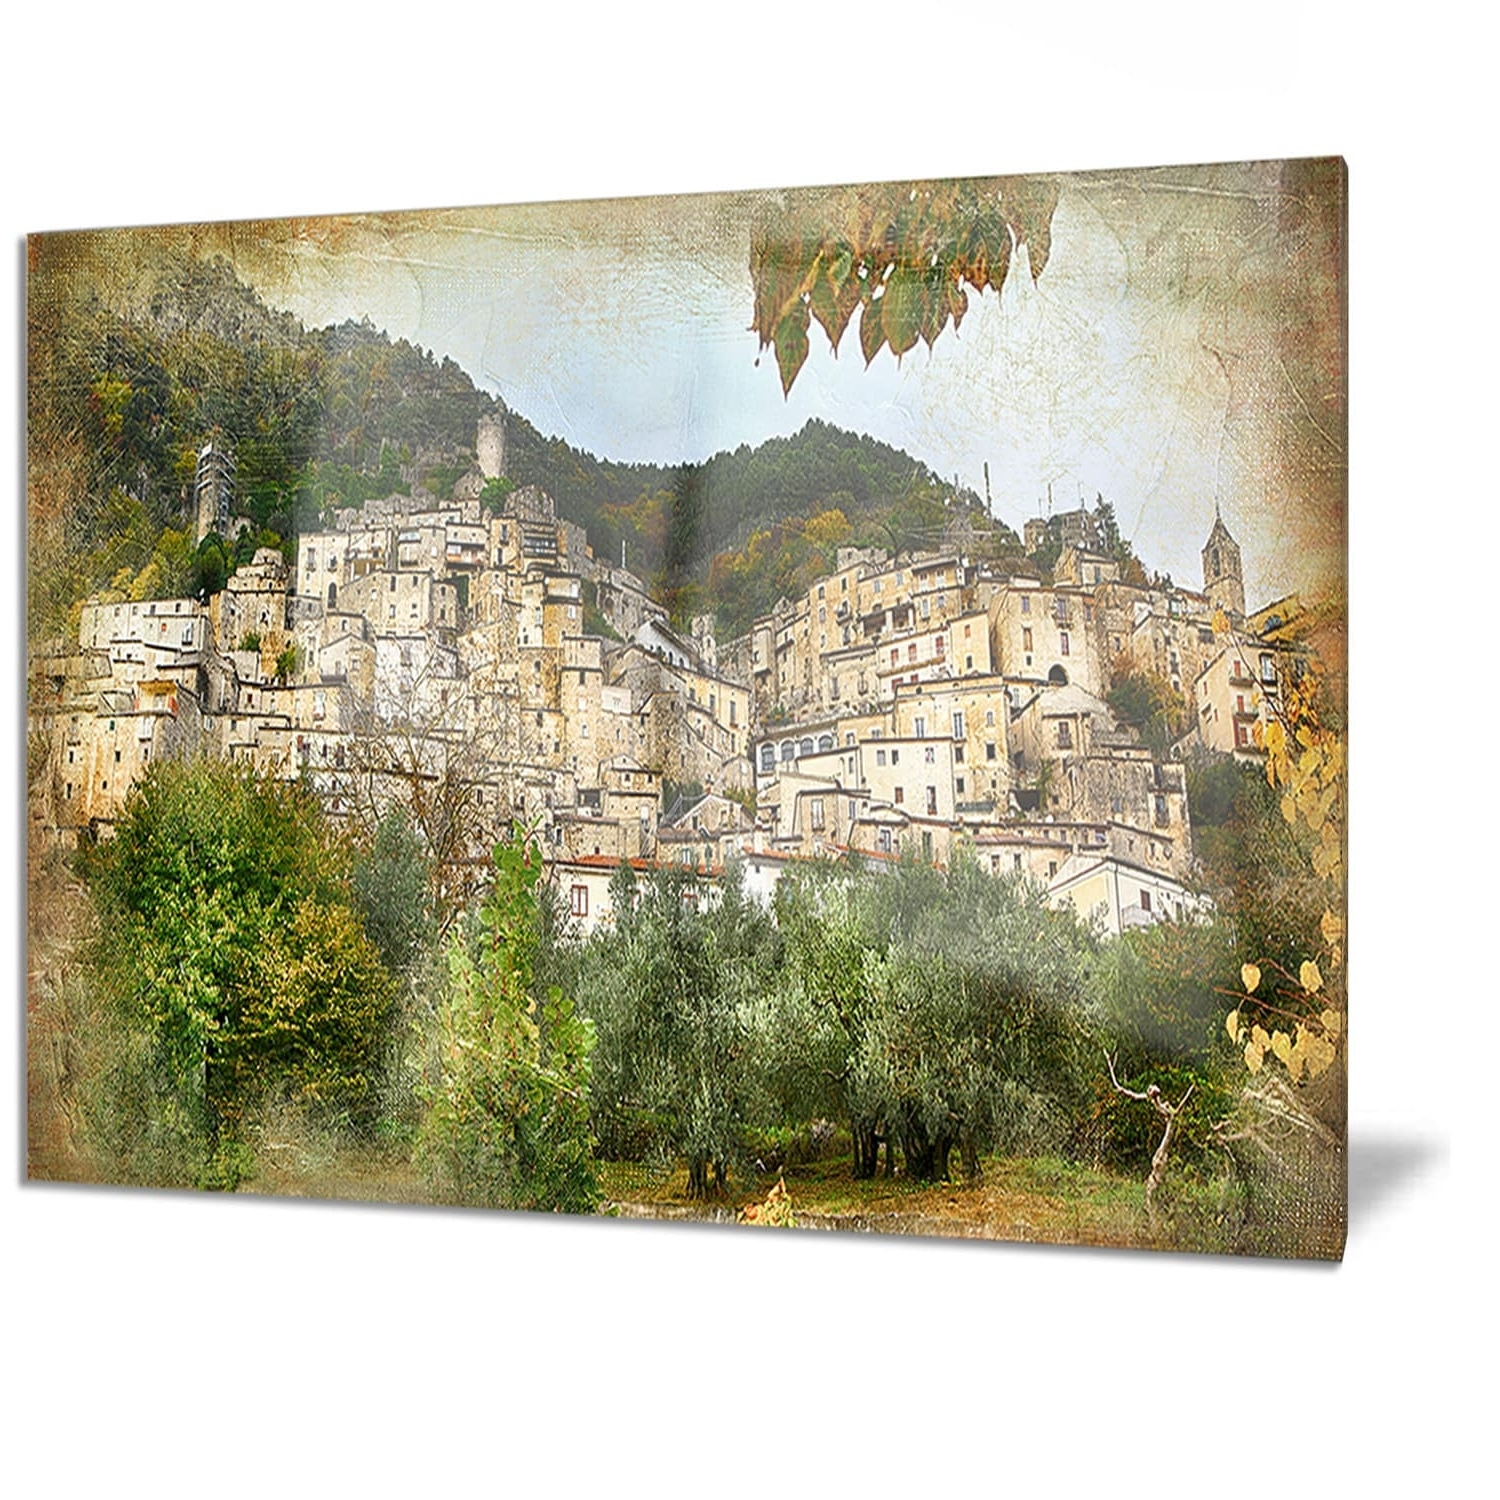 2018 Designart 'old Italian Villages' Landscape Photography Metal Wall Intended For Old Italian Wall Art (View 1 of 15)